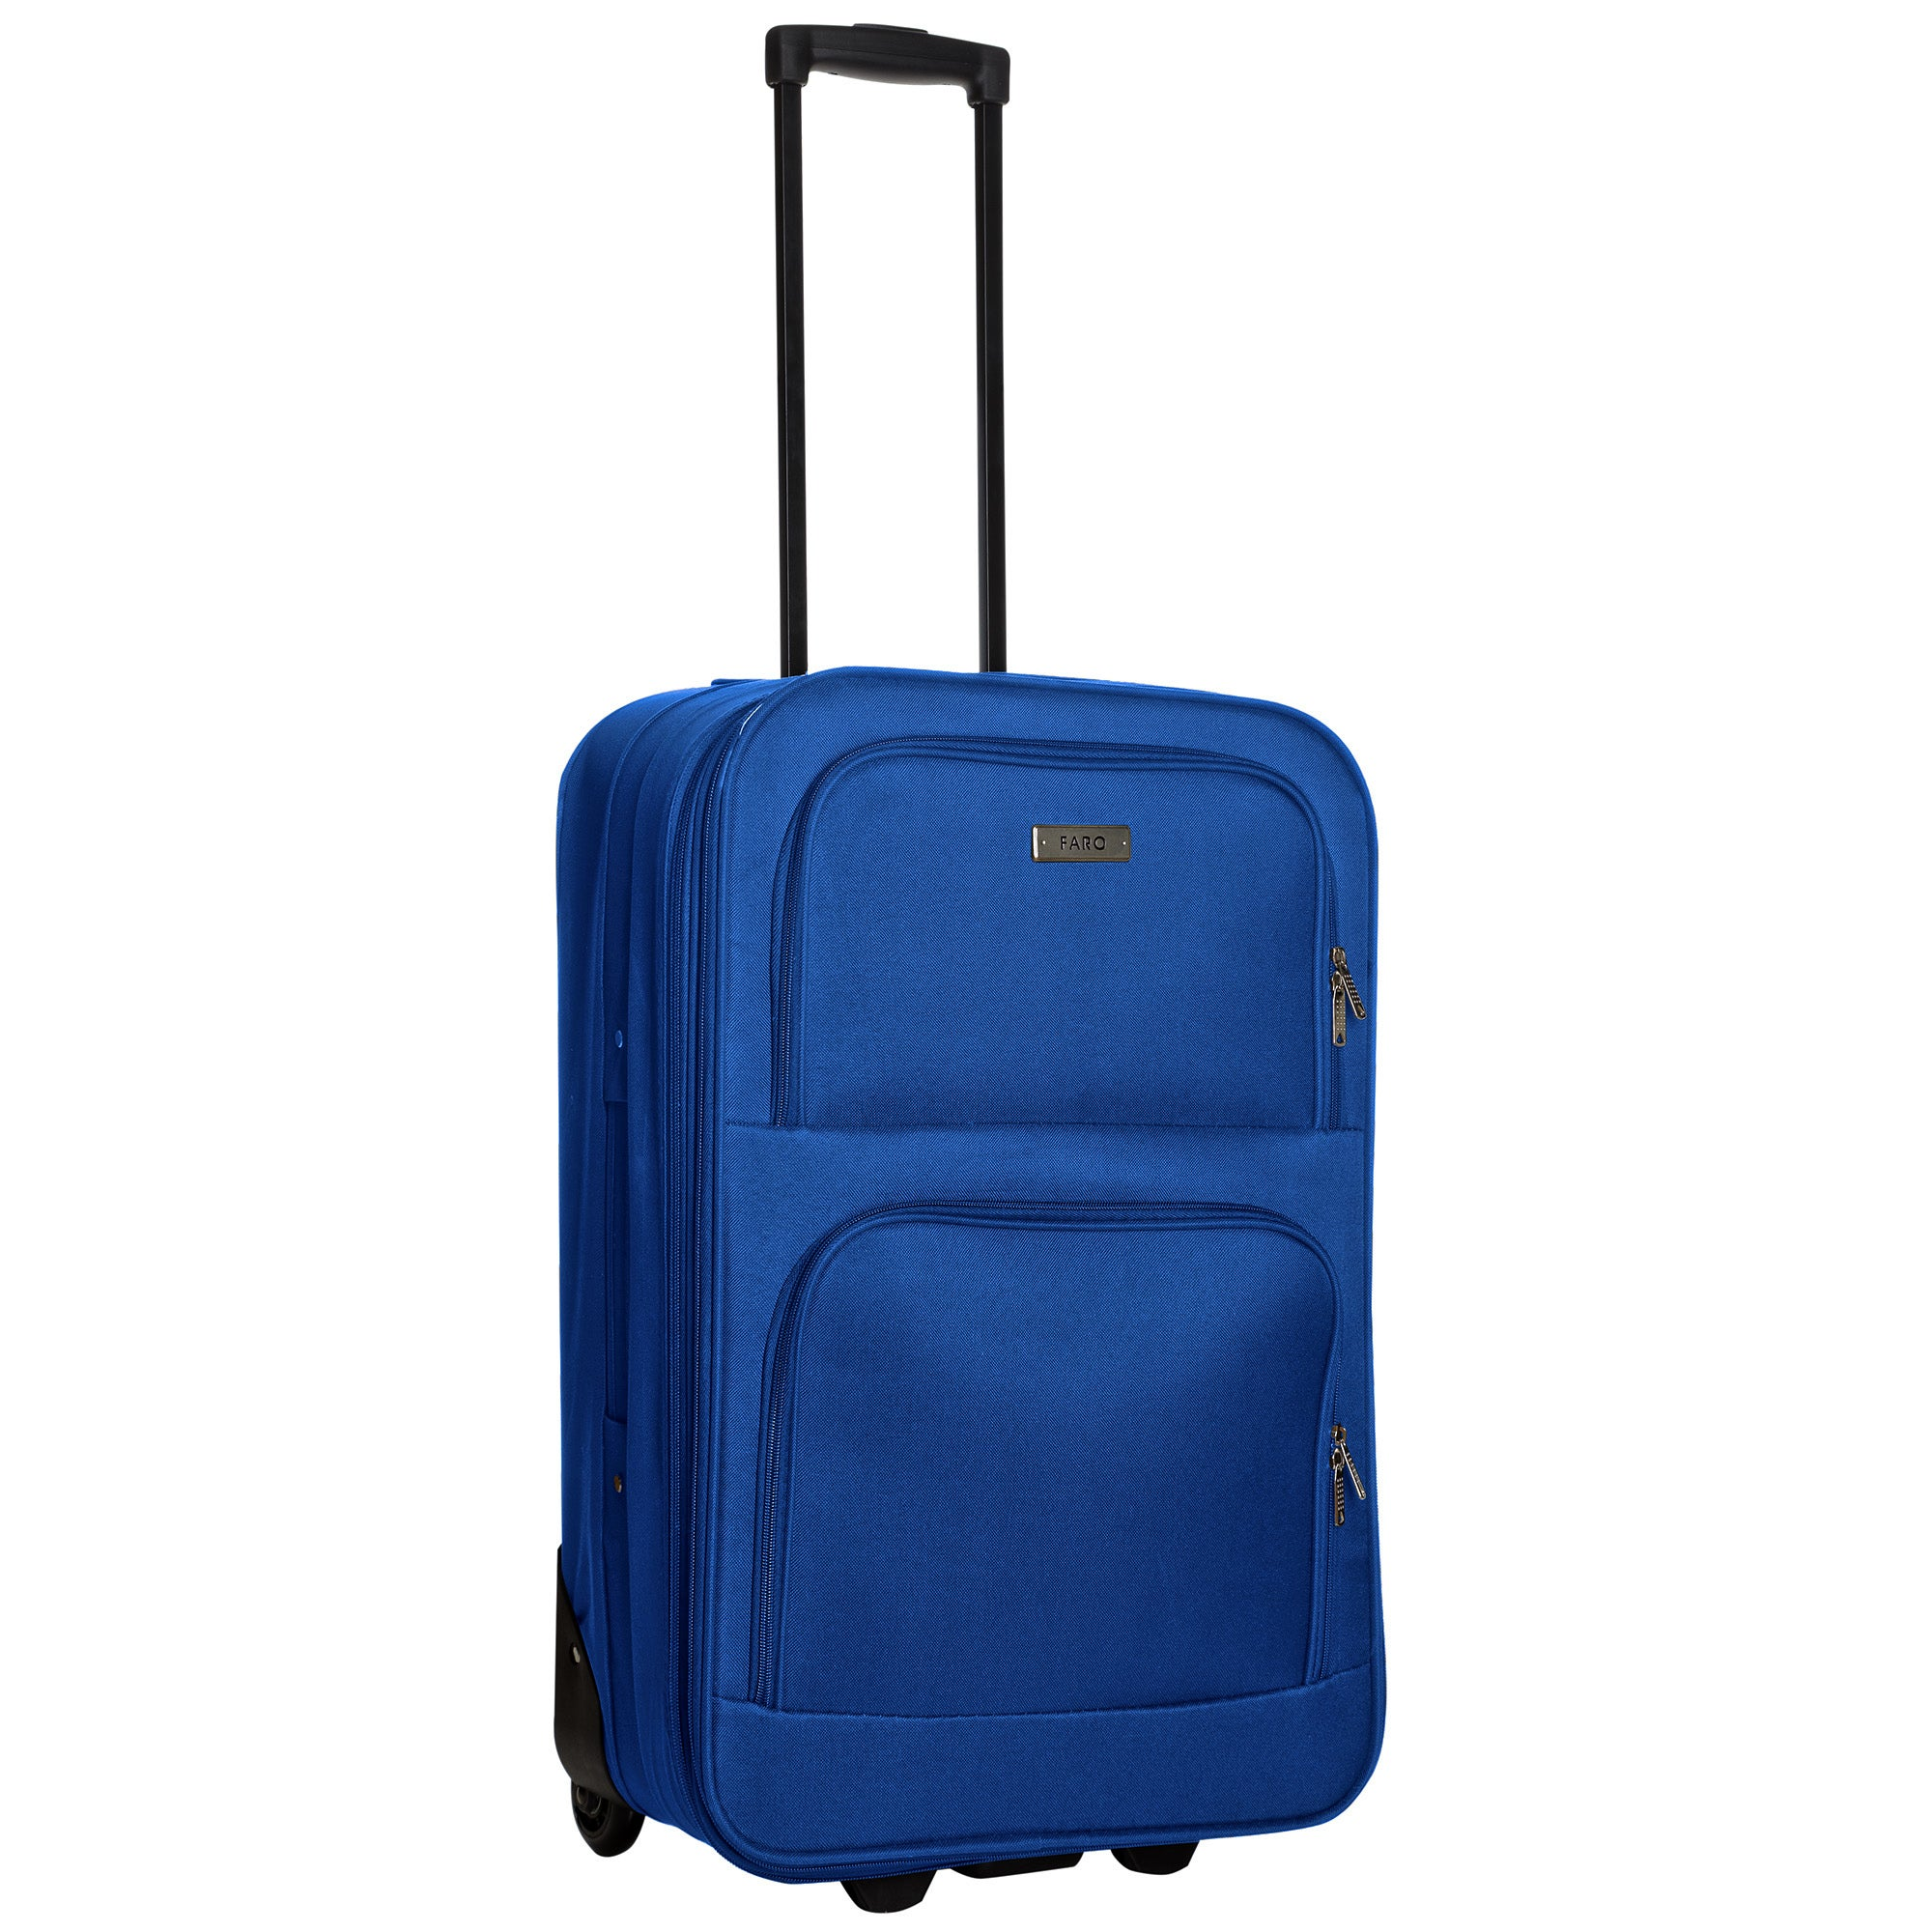 Faro Navy 24 Inch Small Family Luggage Case